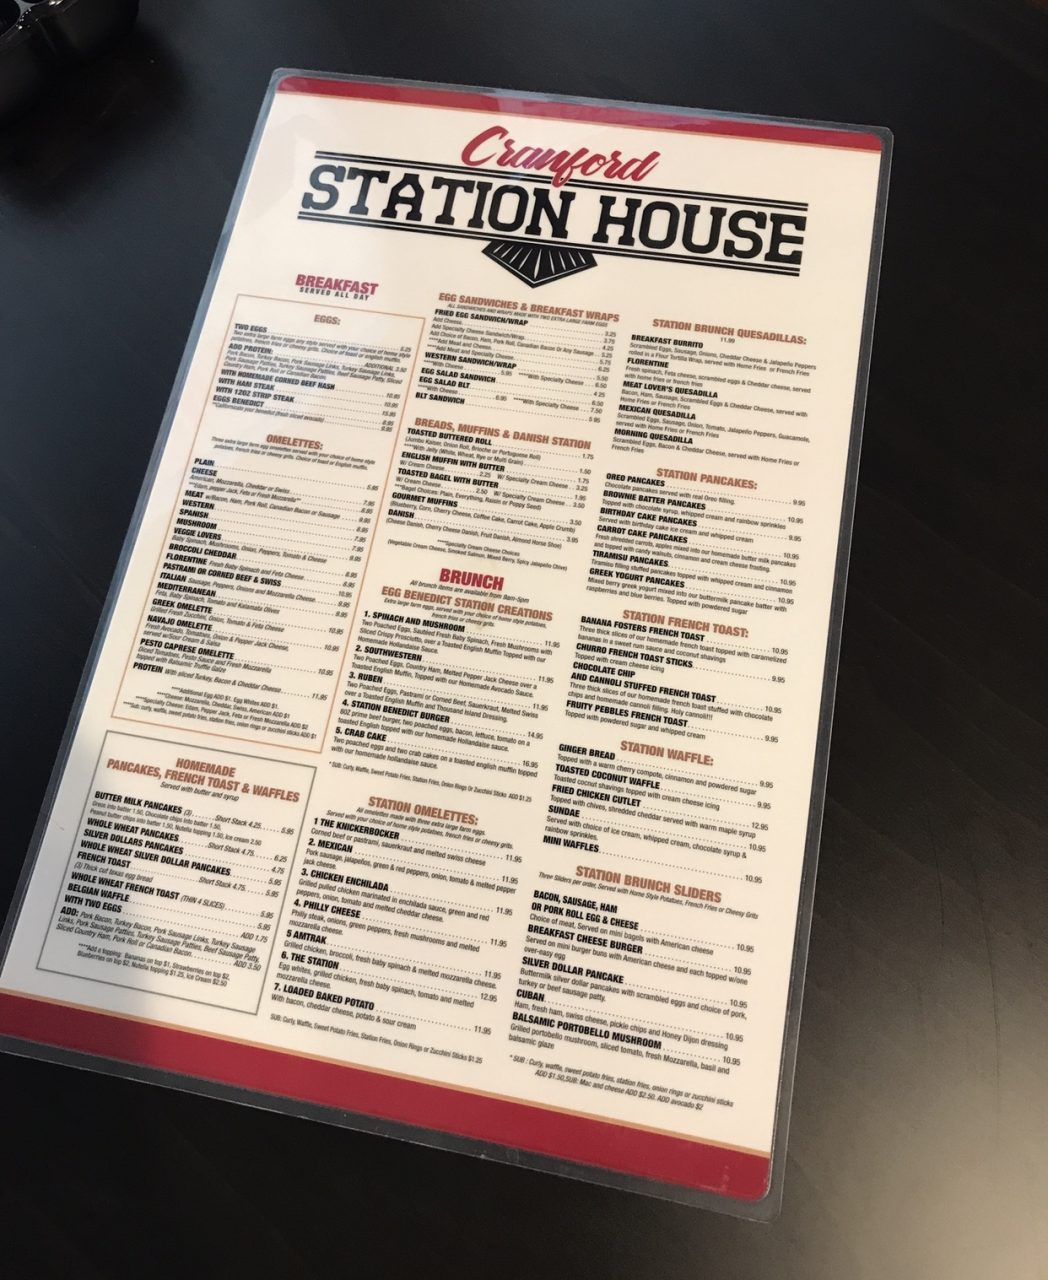 Cranford Station House menu